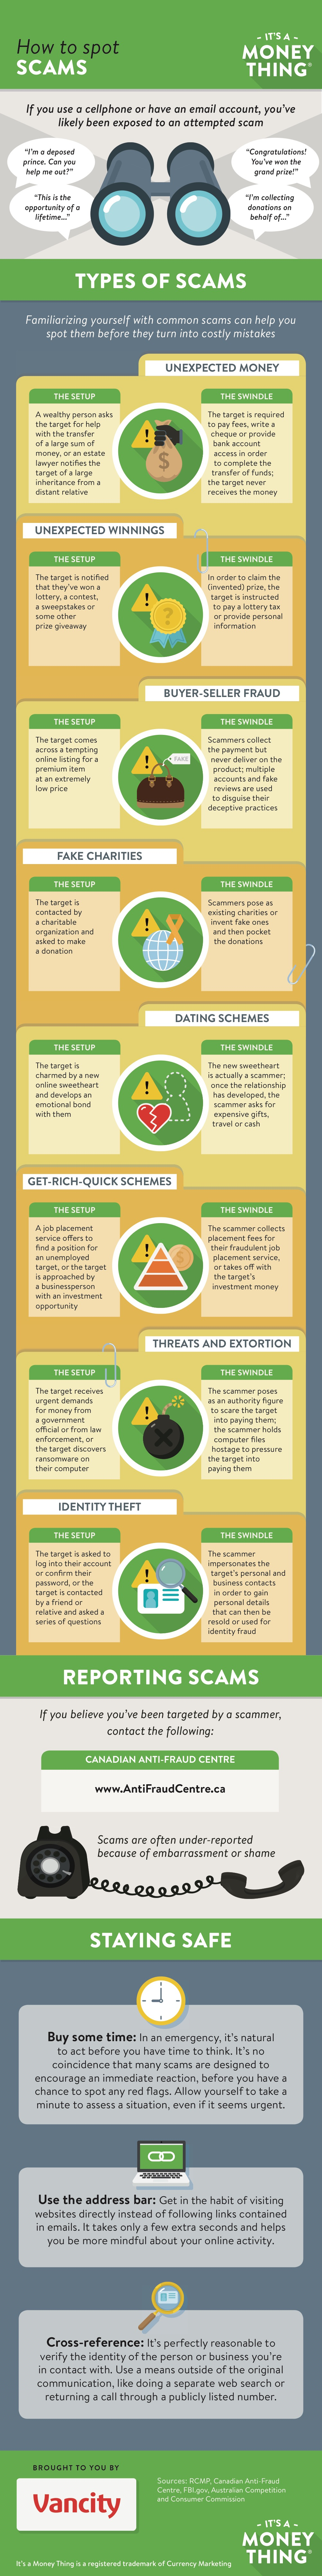 How to spot scams infographic